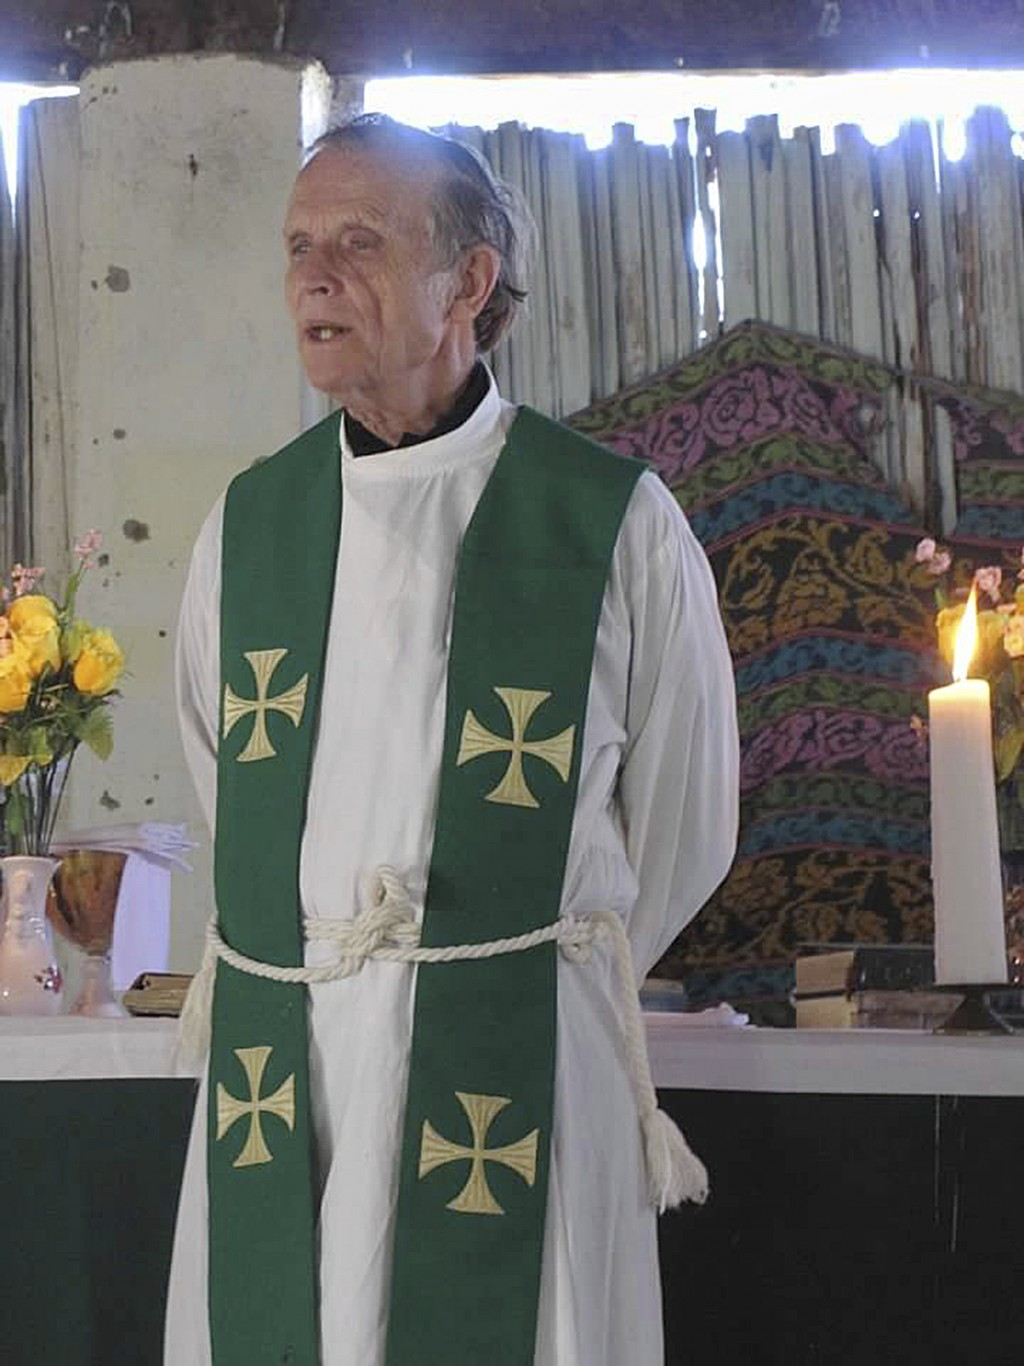 This 2013 photo provided to The Associated Press shows now-defrocked Catholic priest Richard Daschbach leading a service at a church in Kutet, East Ti...